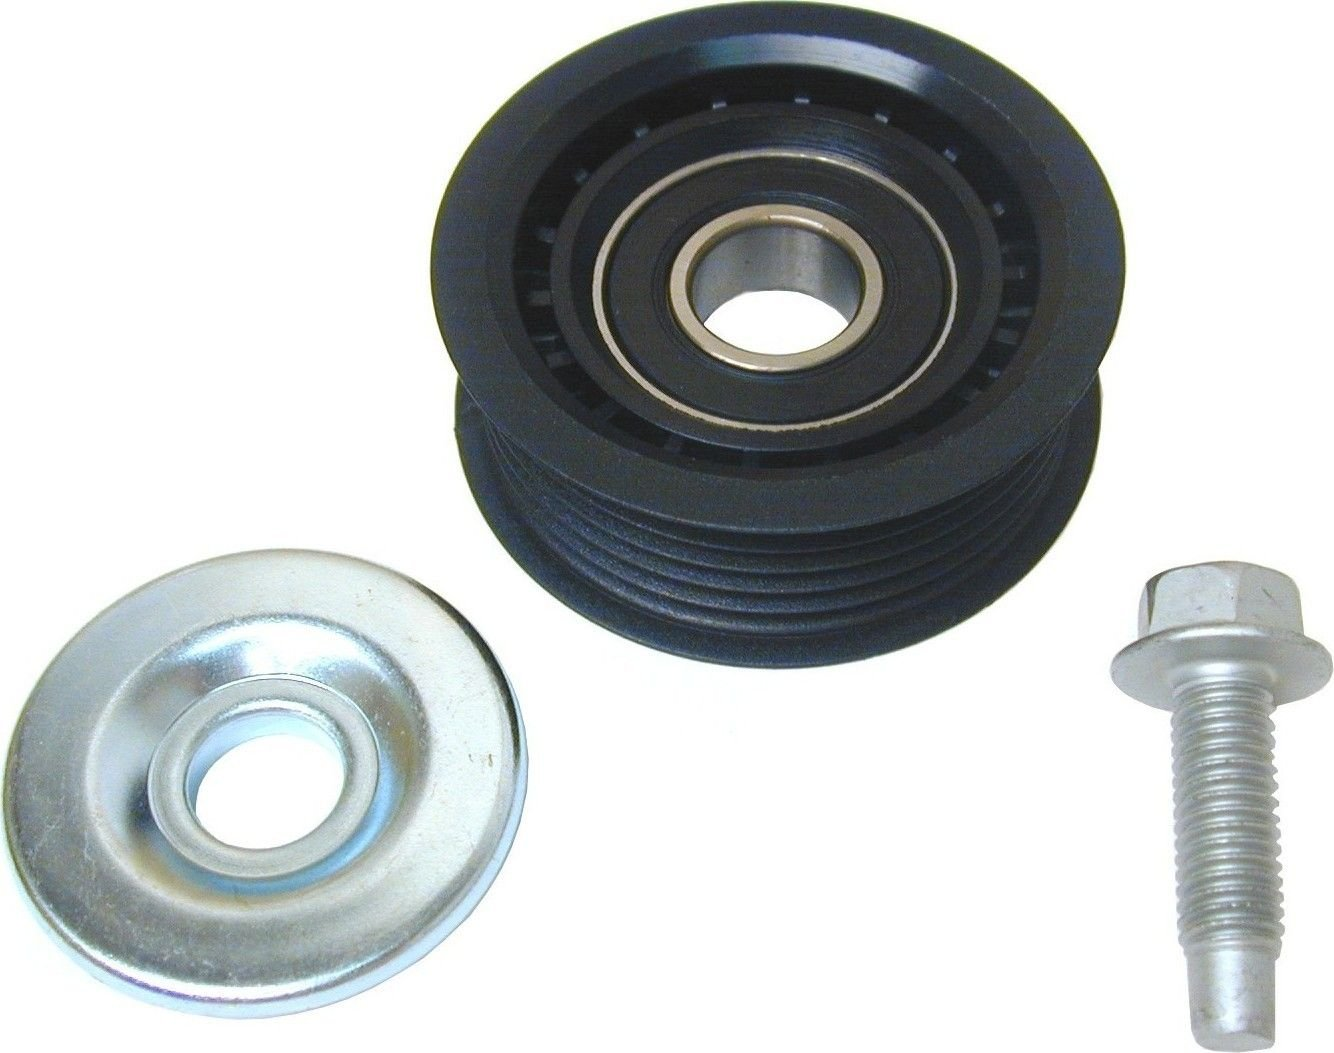 Saab 9 5 Drive Belt Idler Pulley Replacement Acdelco Apa Uro Parts 2000 Timing Upper 4 Cyl 23l 4967907 Above The Tensioner Grooved